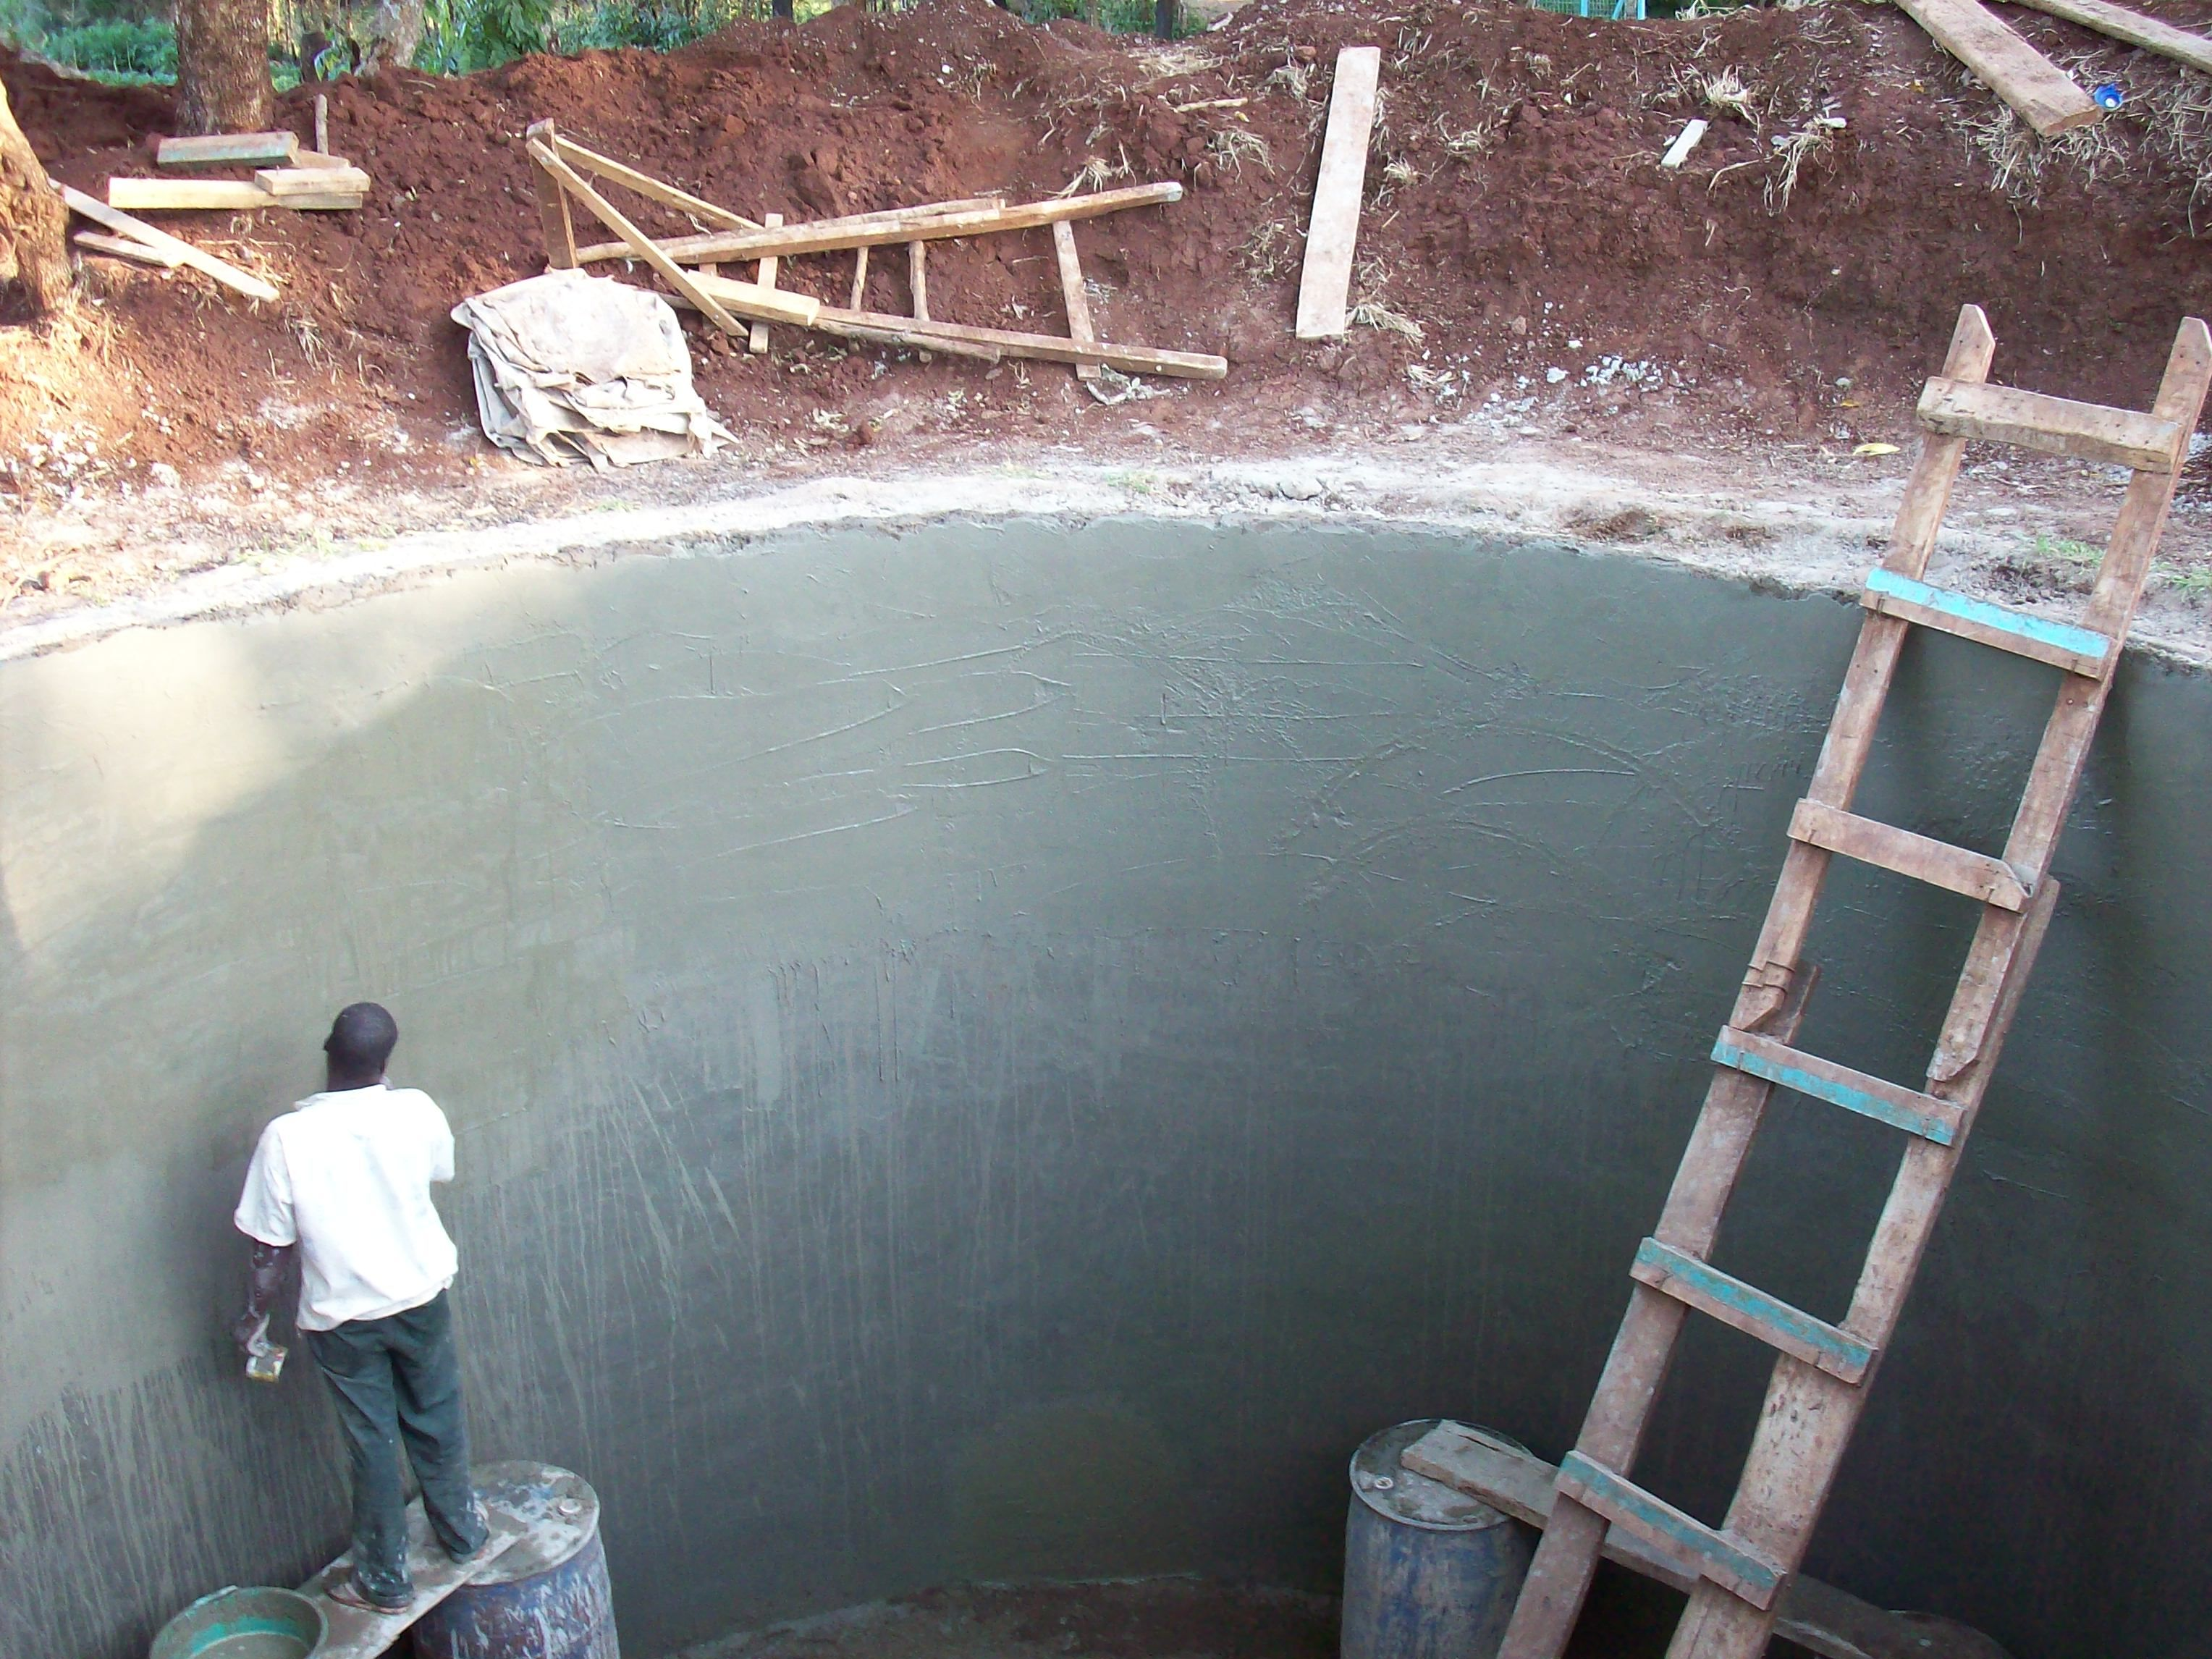 Underground Water Tank Construction : Plastering the walls for safety underground water tank